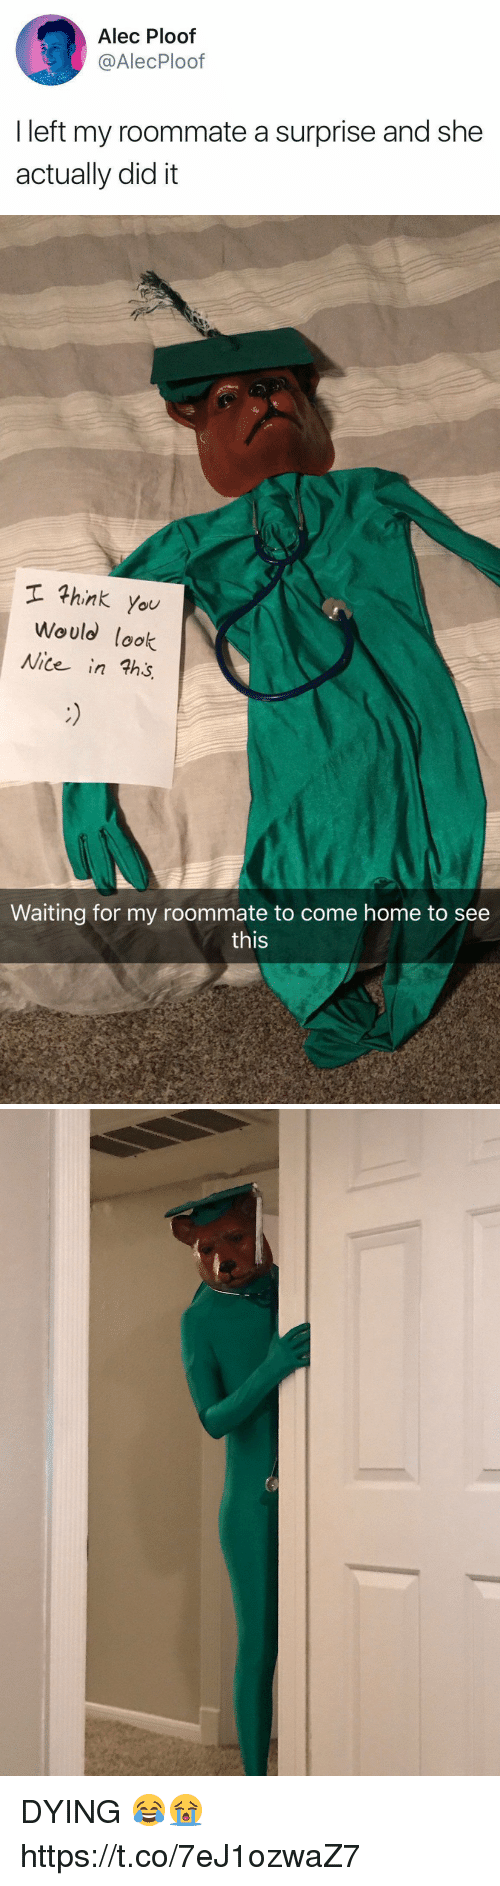 Roommate, Home, and Girl Memes: Alec Ploof  @AlecPloof  I left my roommate a surprise and she  actually did it   hink you  Would lok  Nite in ths  Waiting for my roommate to come home to see  this DYING 😂😭 https://t.co/7eJ1ozwaZ7